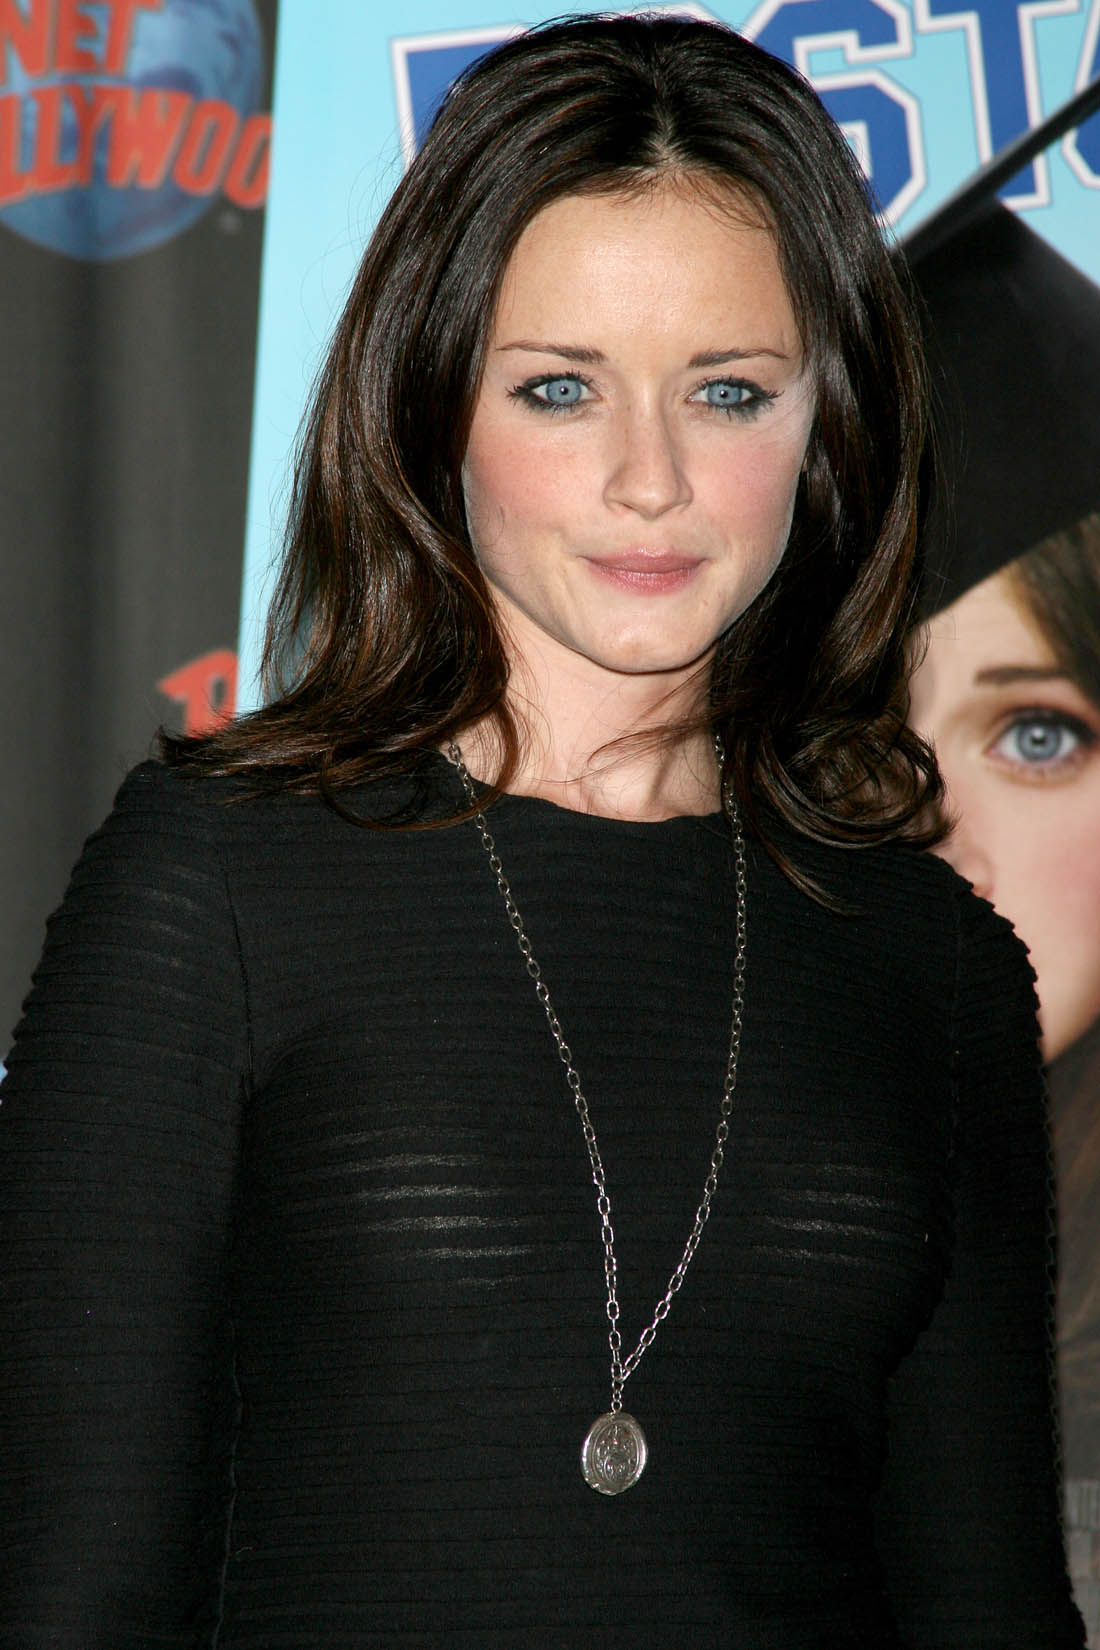 Alexis Bledel Nude Photos Videos gallery-0 | My Hotz Pic